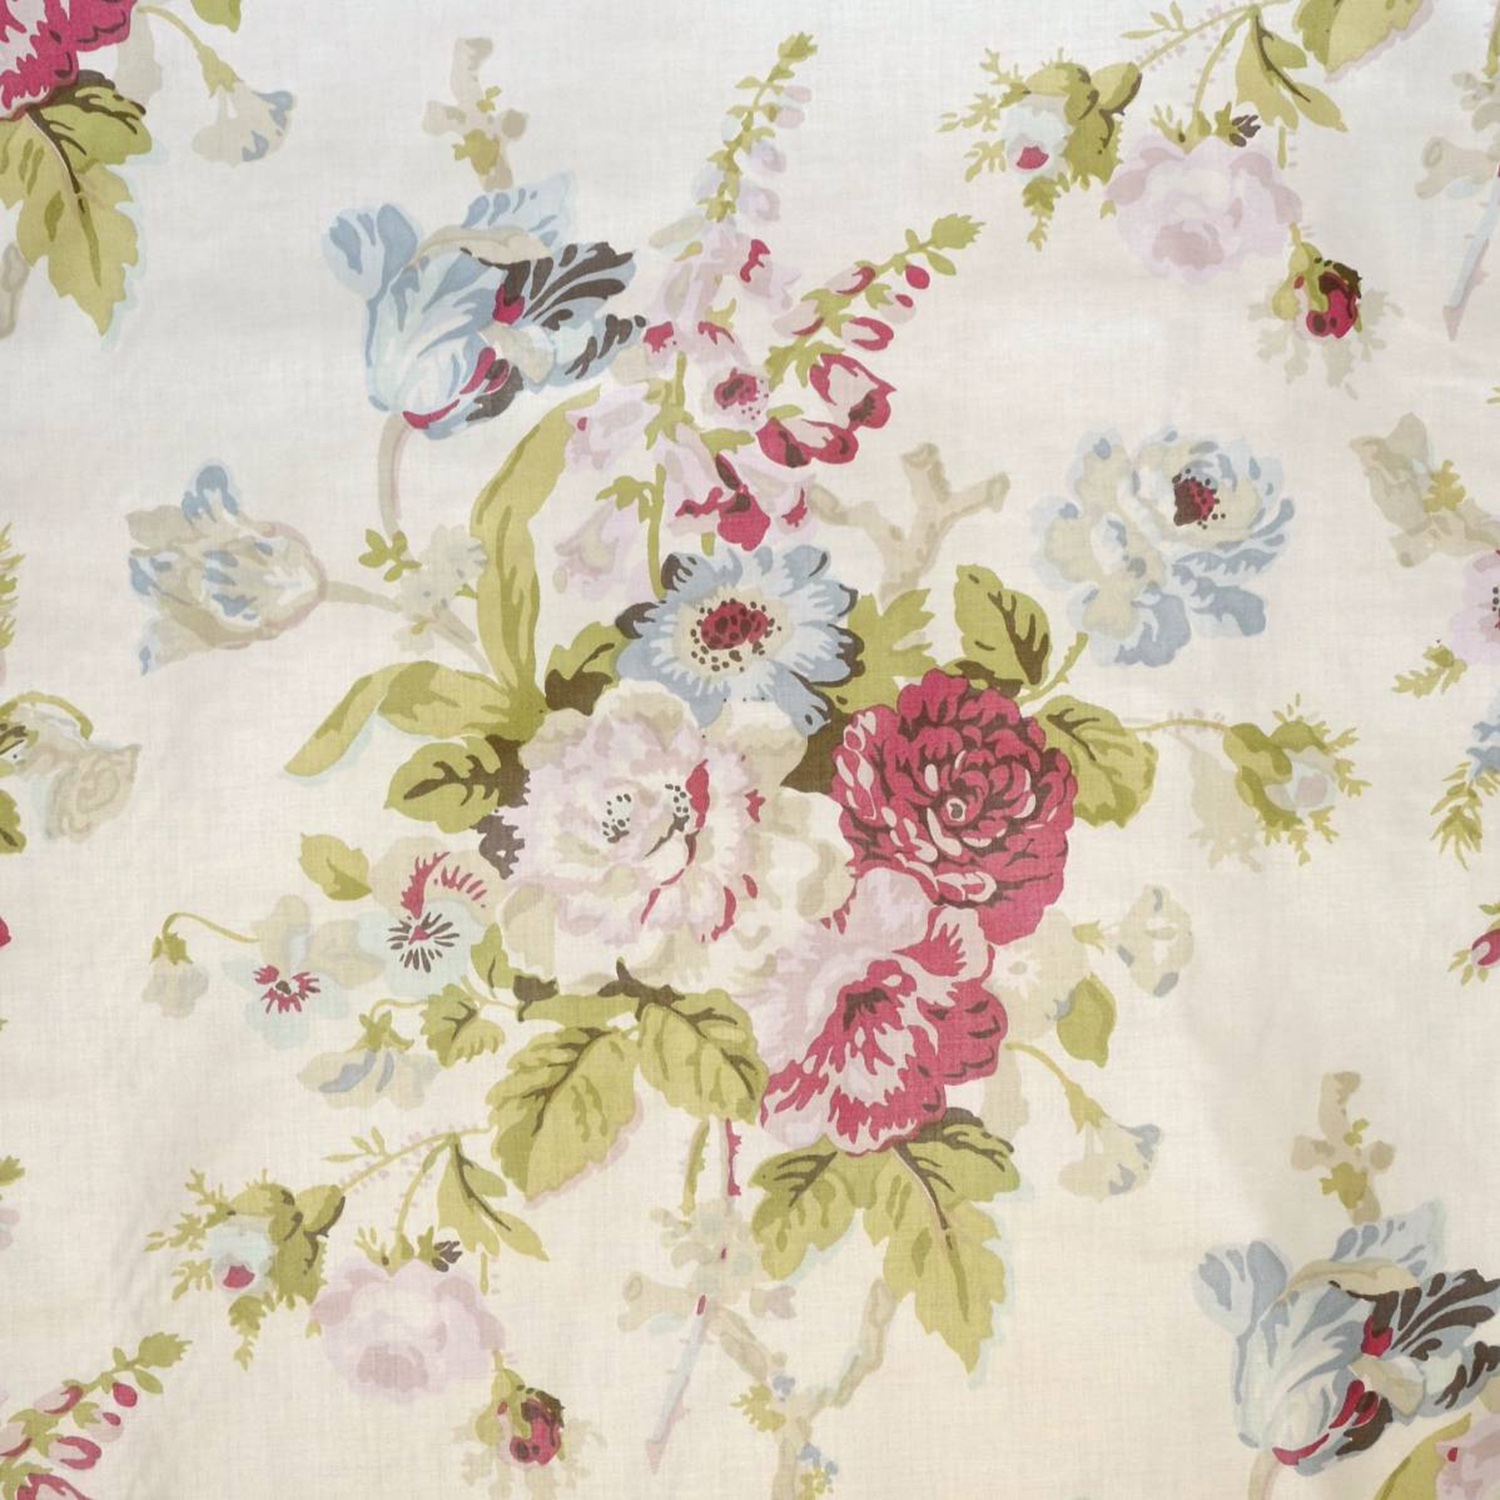 <p><strong>GRENVILLE</strong>pink/green/glazed chintz 5300-02<a href=/collection-5/grenville-pink-green-glazed-chintz-5300-02>More →</a></p>